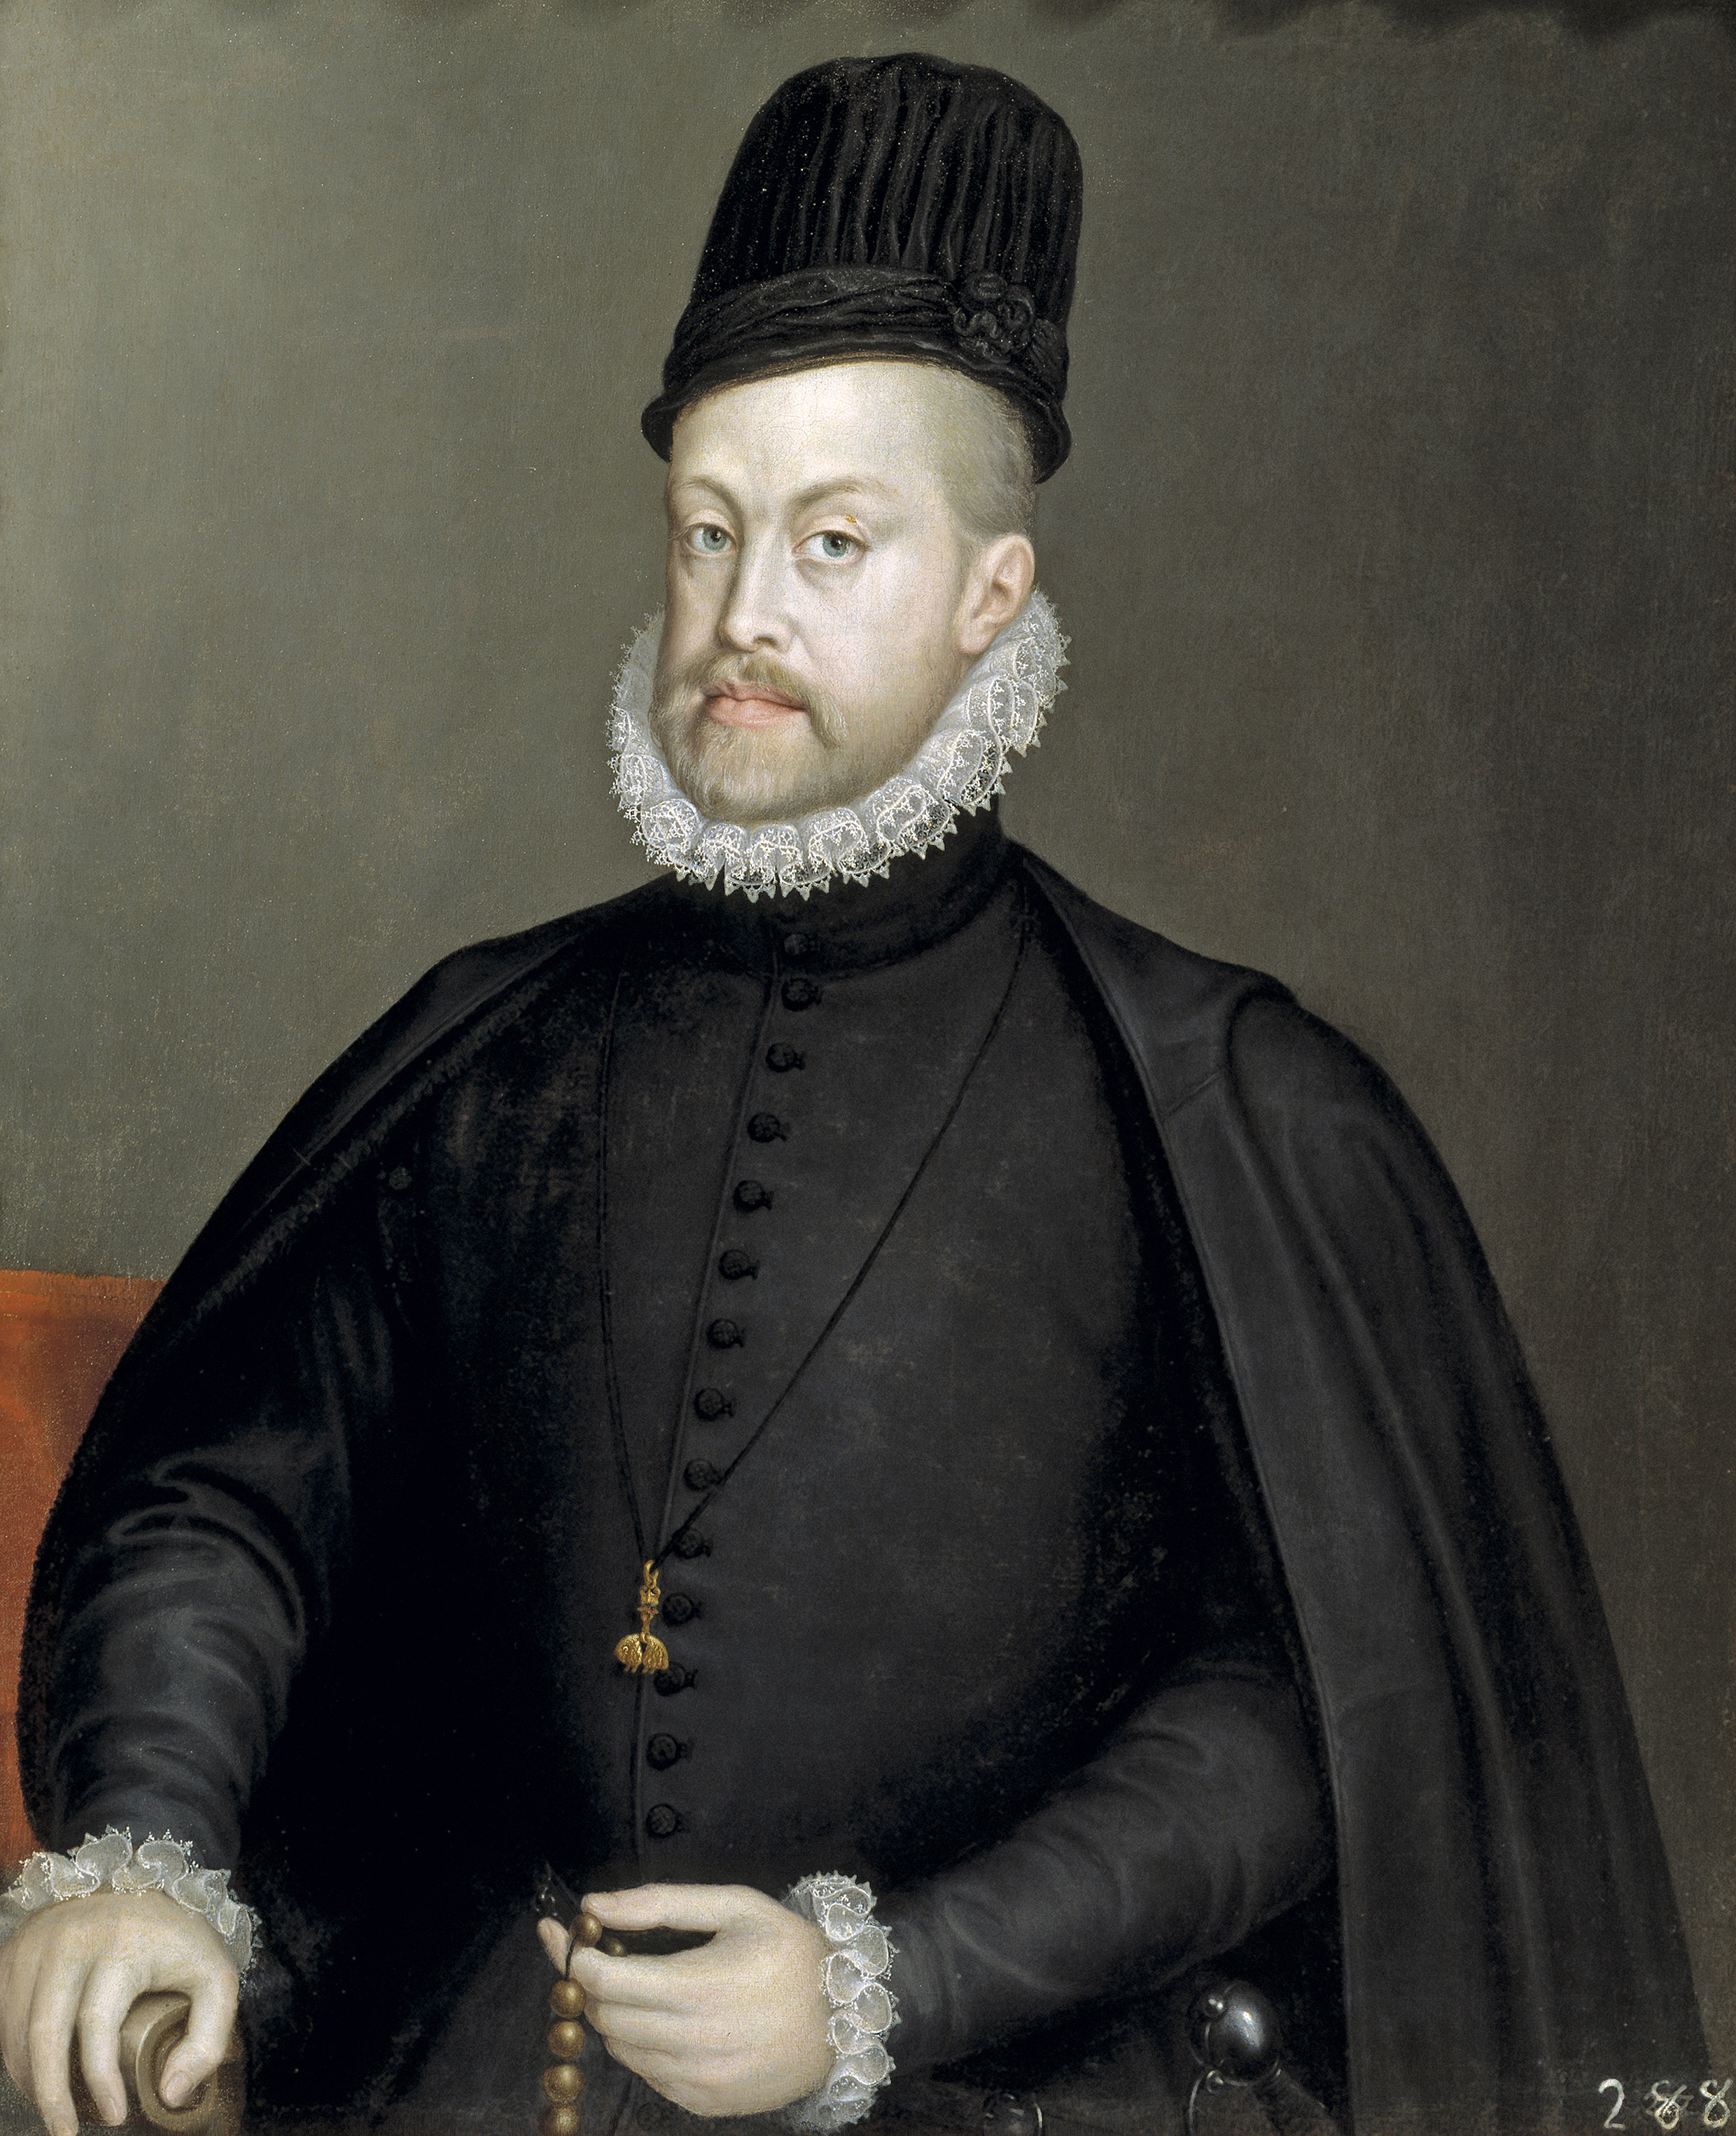 https://upload.wikimedia.org/wikipedia/commons/2/2d/Portrait_of_Philip_II_of_Spain_by_Sofonisba_Anguissola_-_002b.jpg